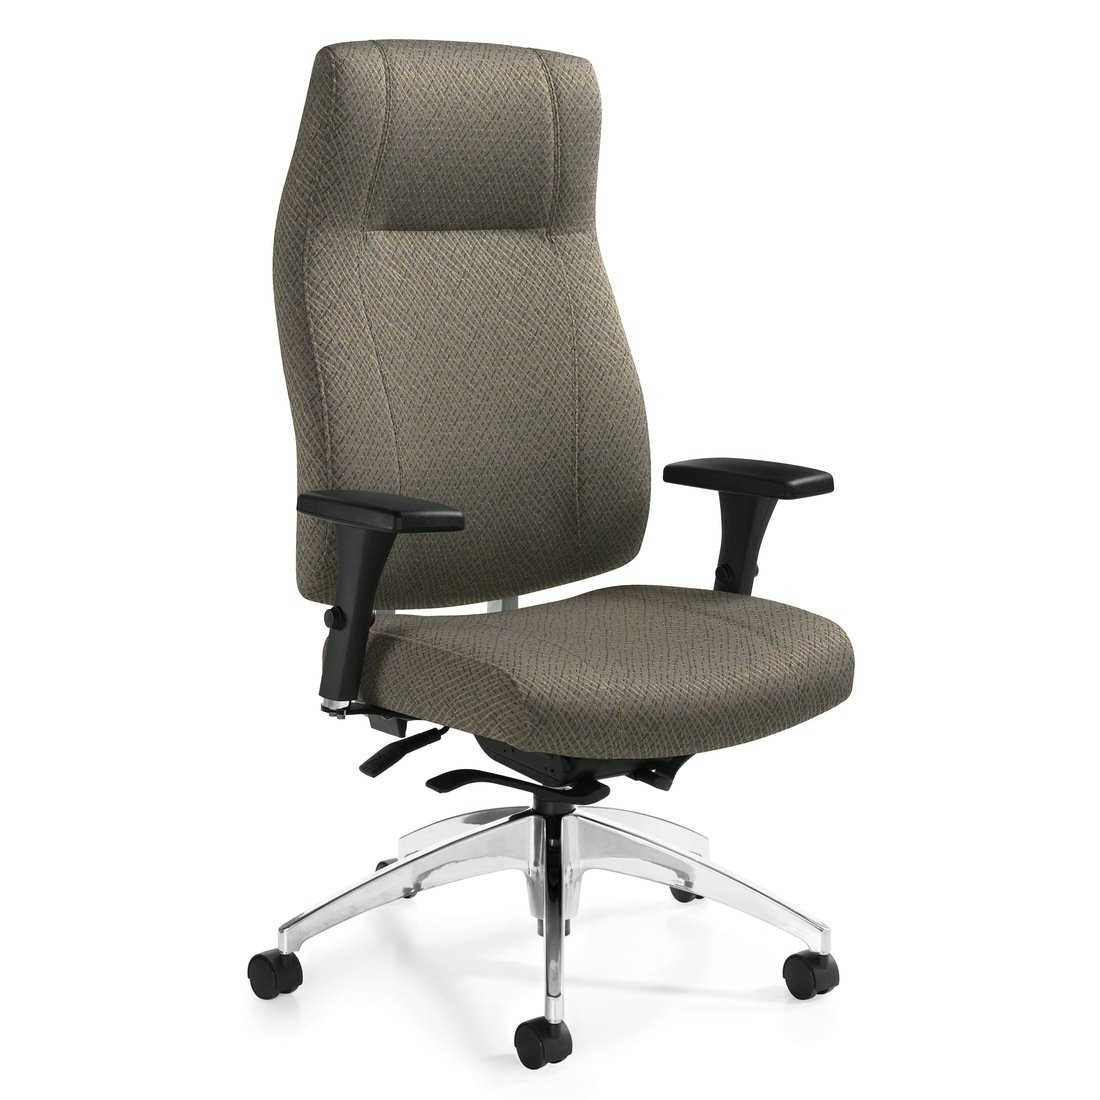 Triumph high back weight sensing Synchro-tilter chair, model 3650-8. This chair has been placed on a white background.